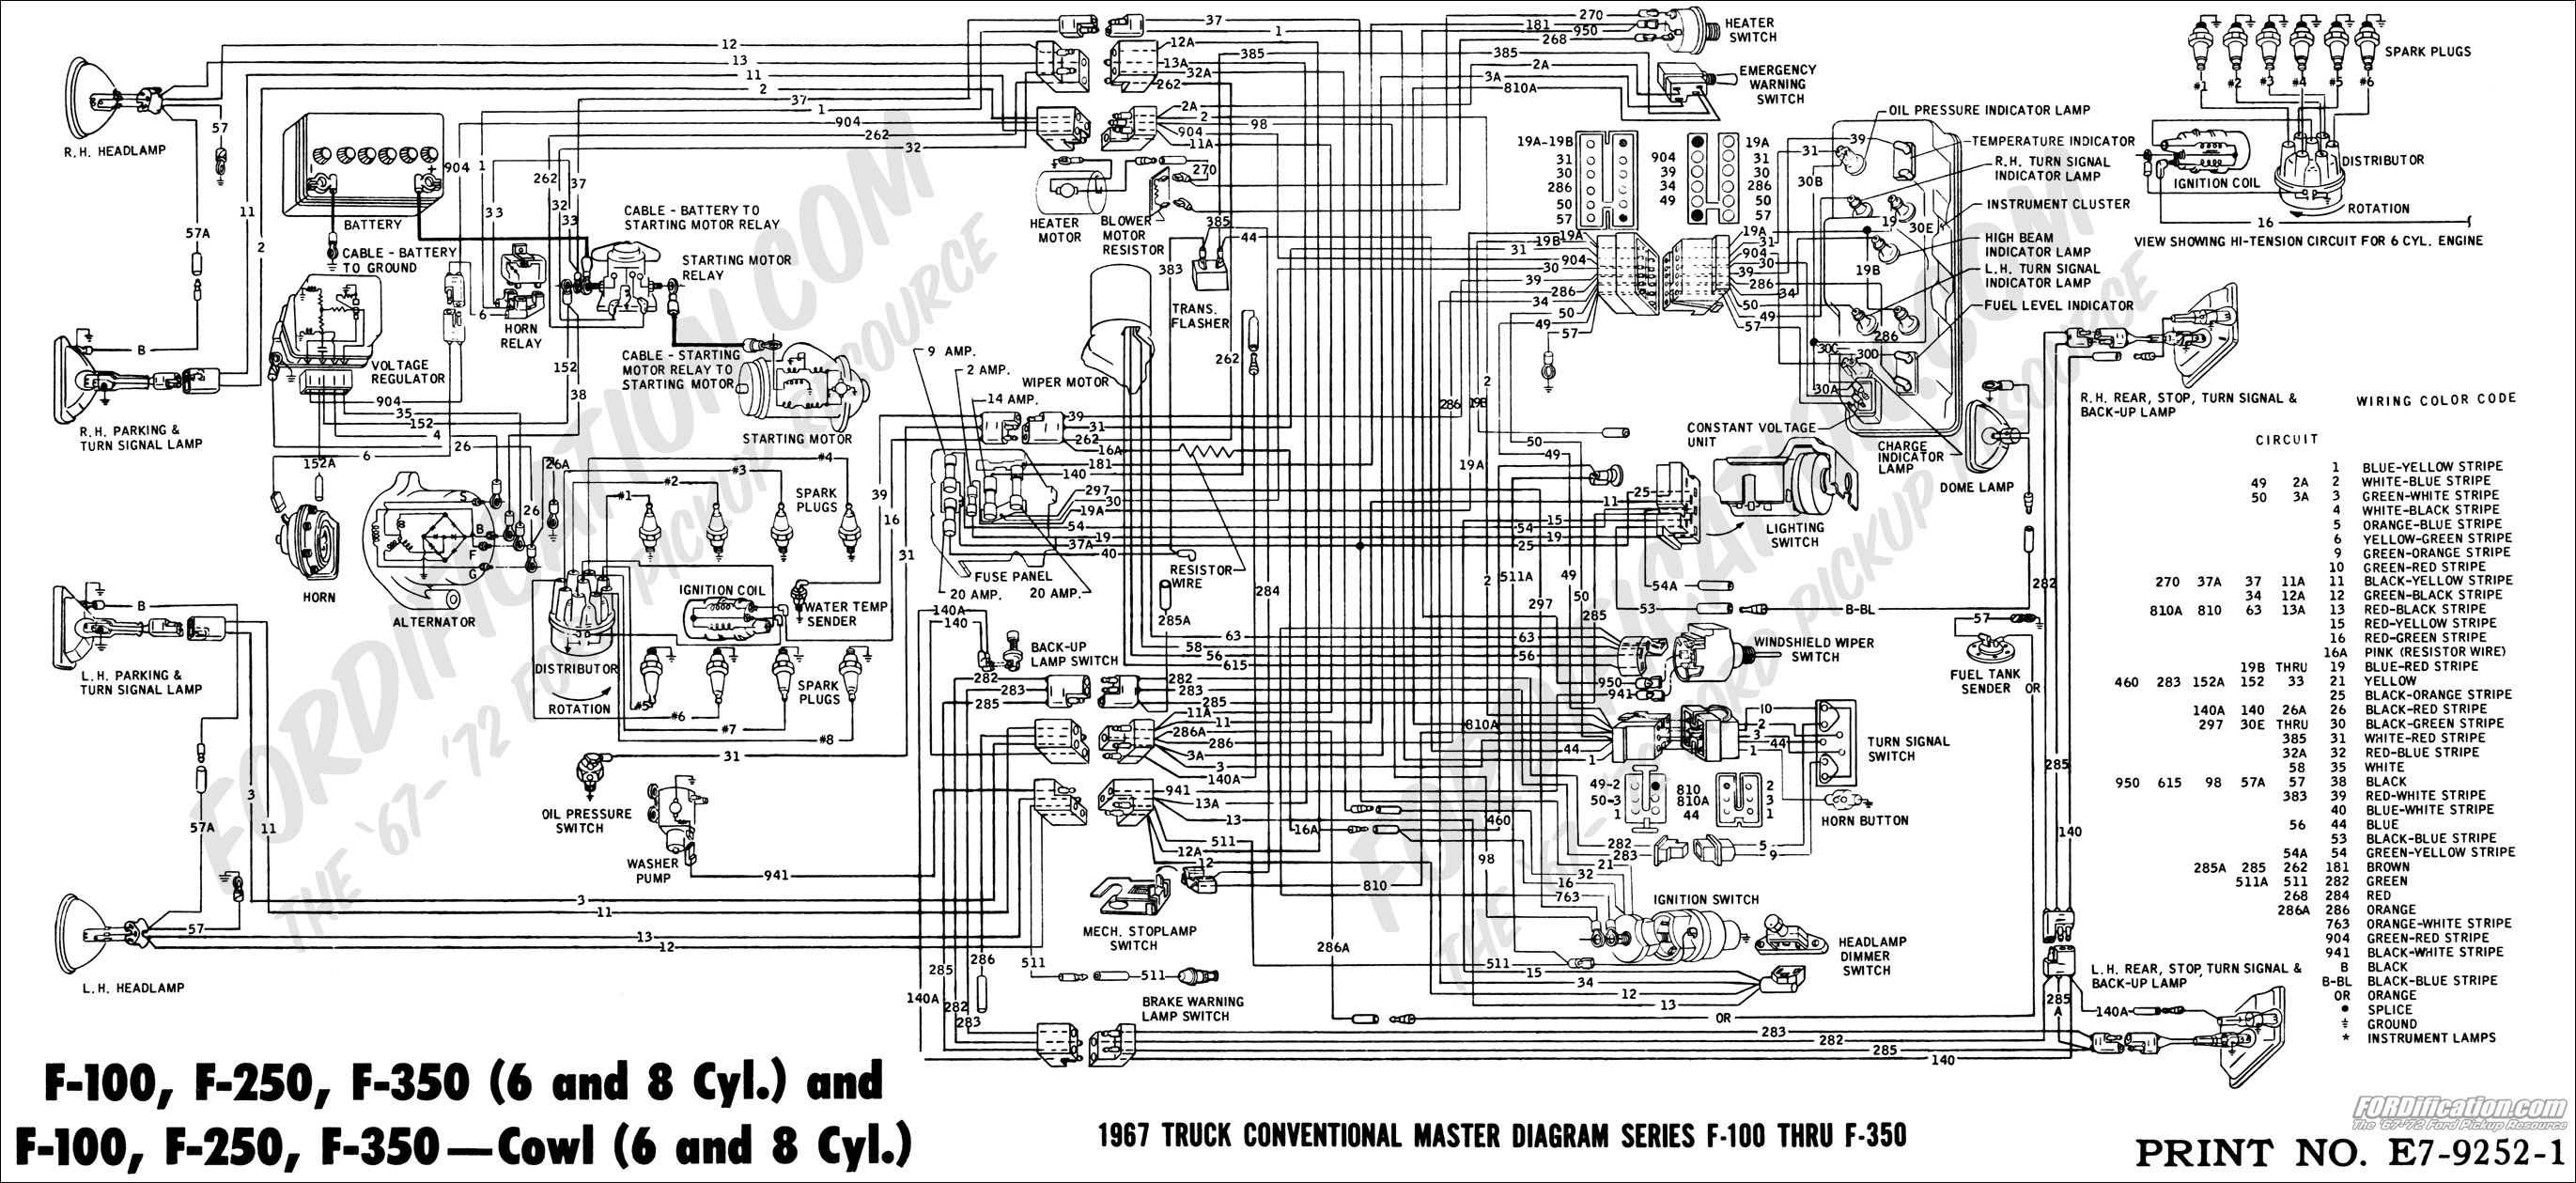 Diagram For 2002 Ford F 150 Wiring Harness Likewise Ford F 150 Likewise  1993 Ford F 150 Fuse Box Diagram On Ducati Fuse Box Diagram